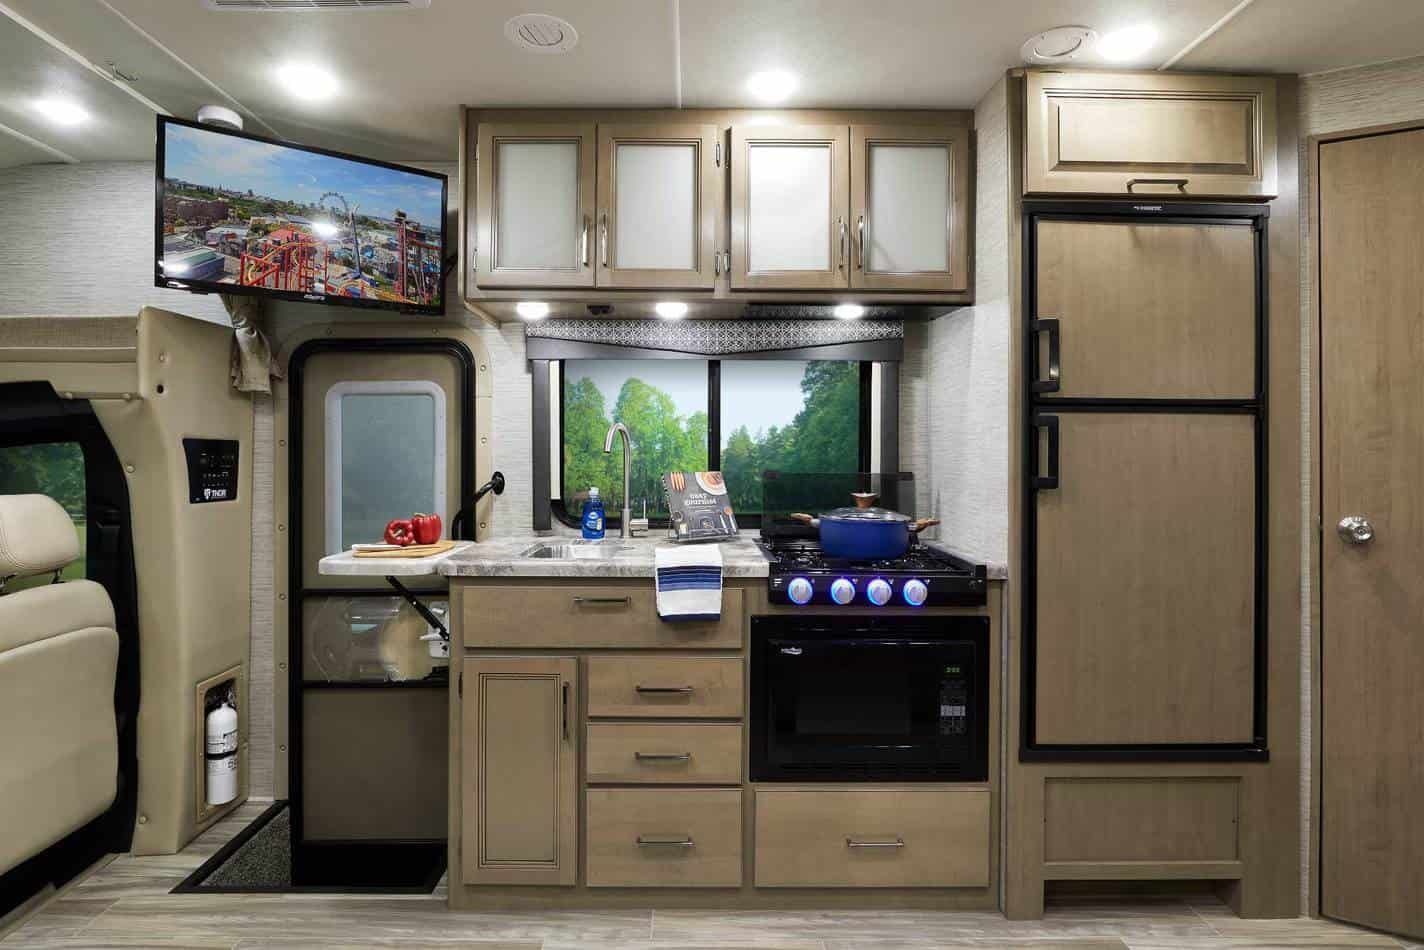 Interior view of RV kitchen in a Class A motorhome